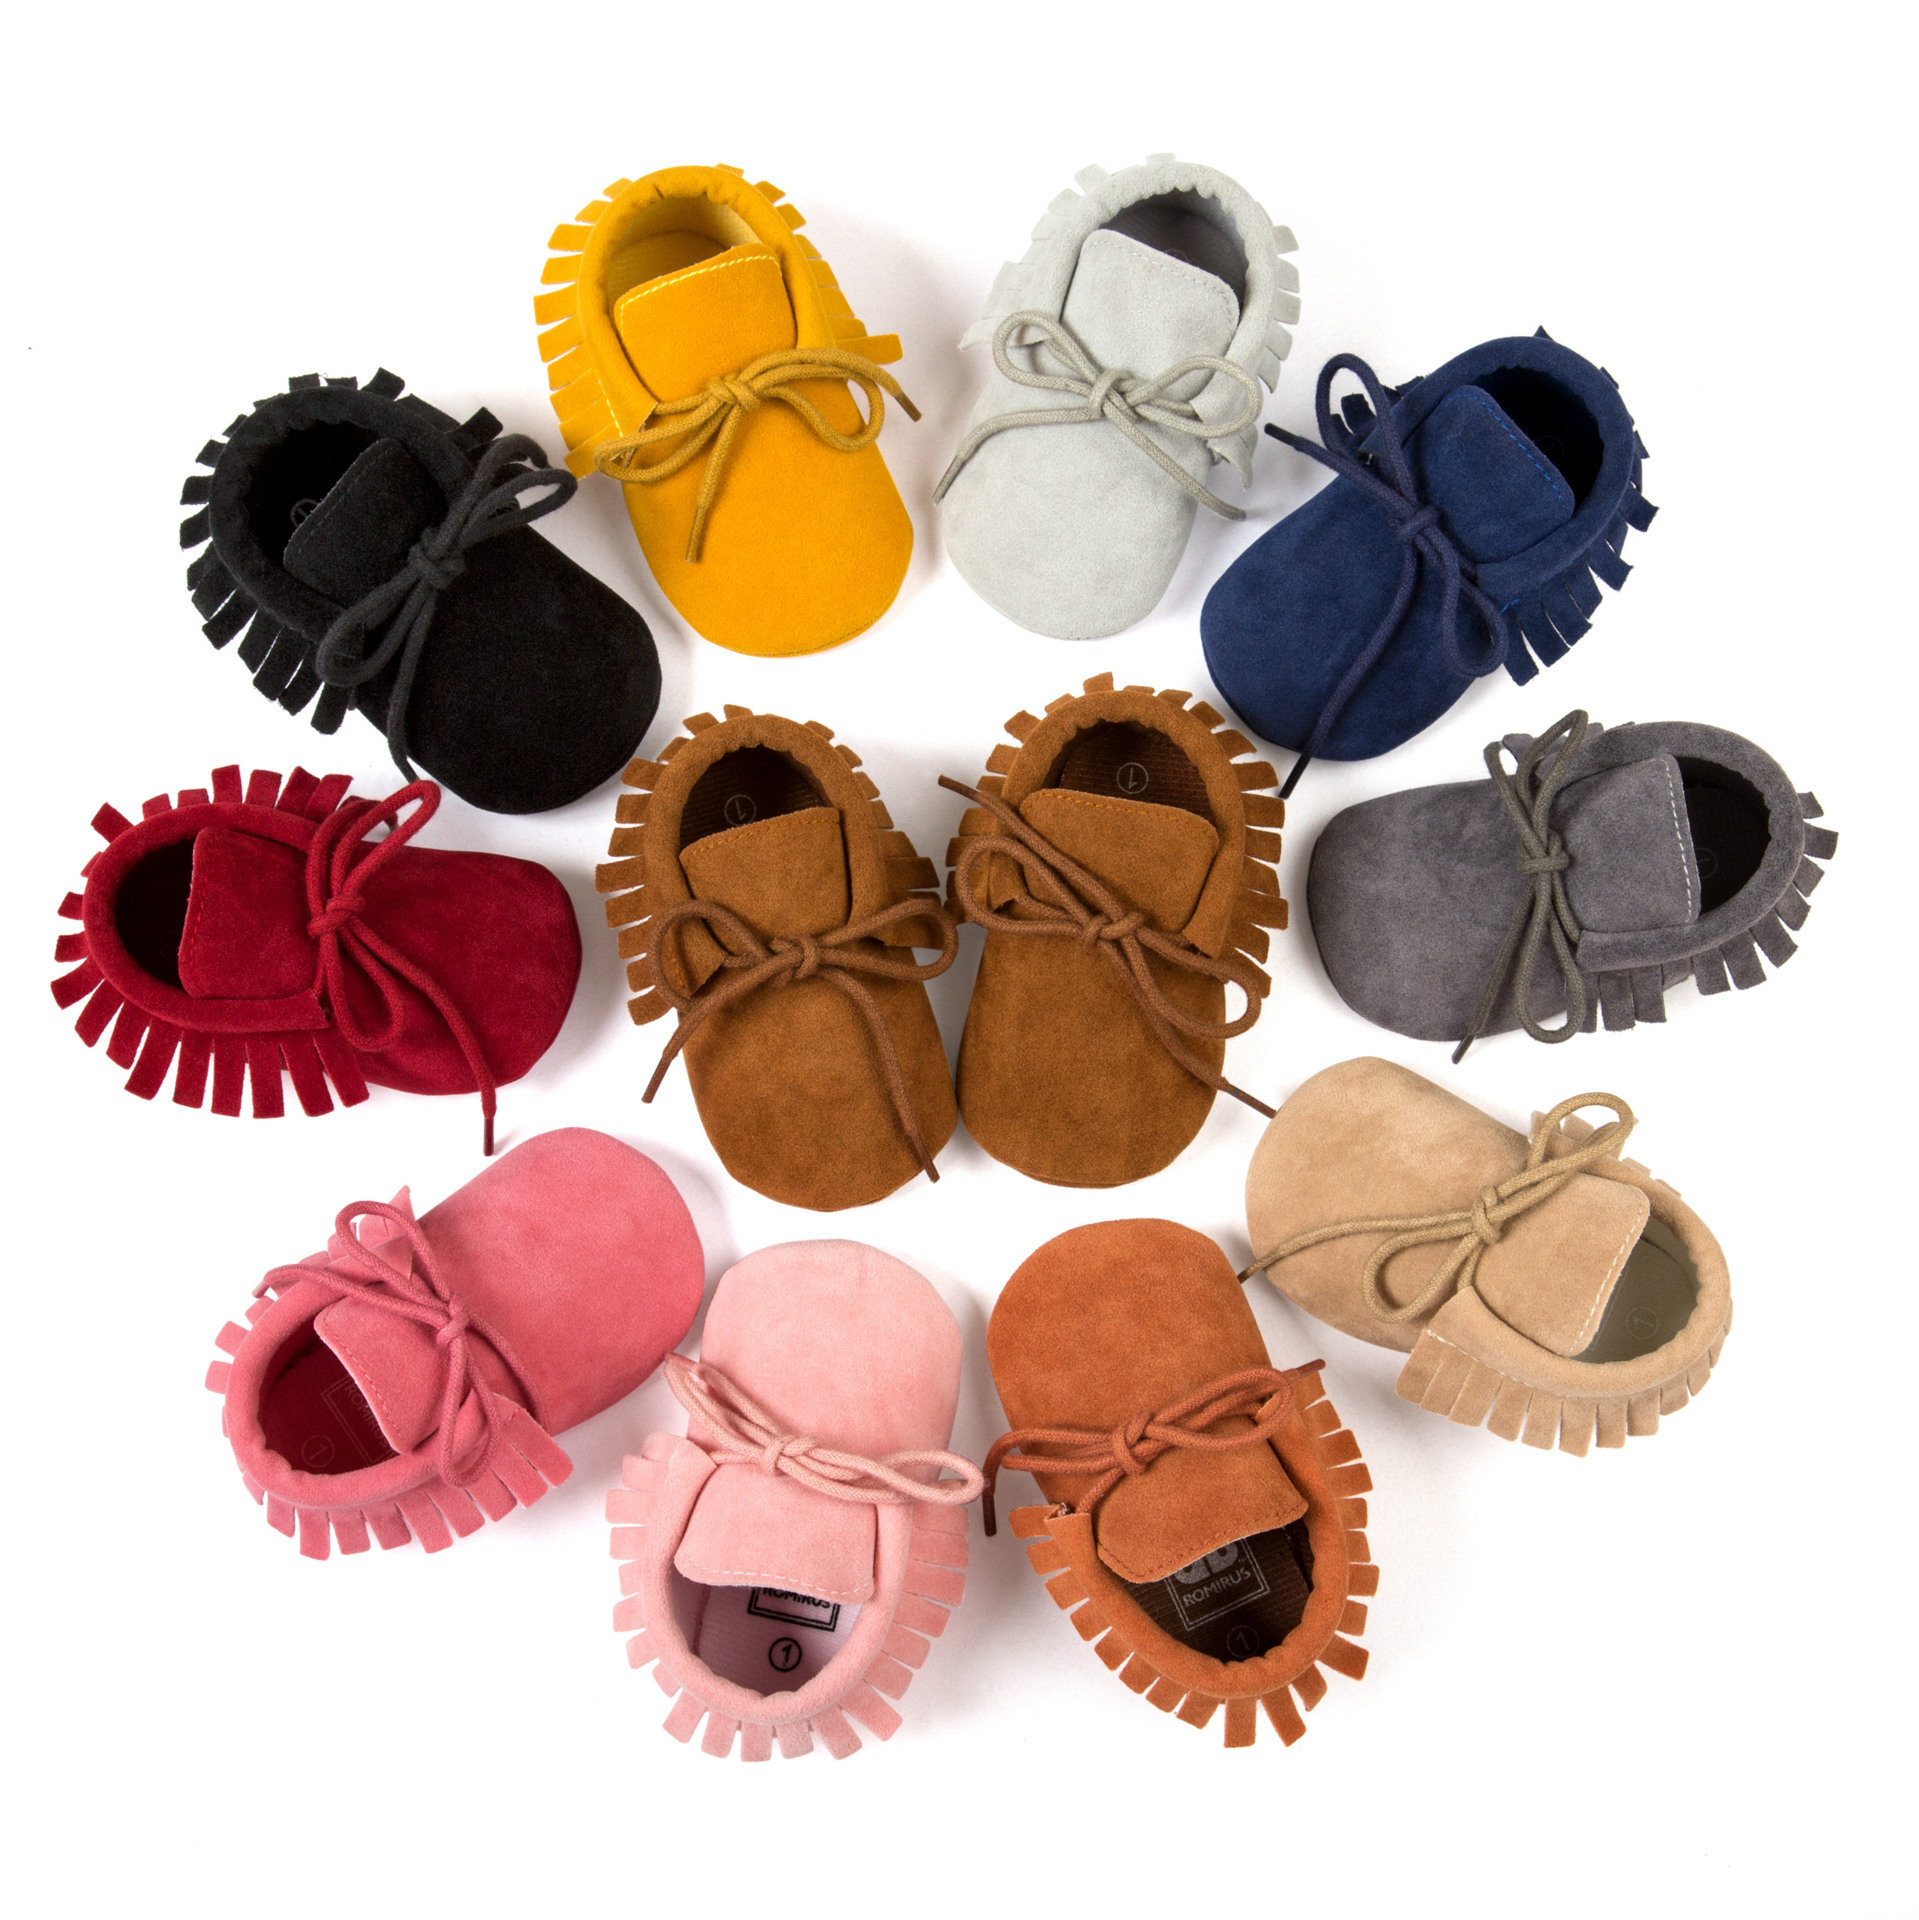 Free Shipping 2016 Fashion Lace up Tassel Suede Baby Shoes Moccasins Infants Baby Toddler Shoes Newborn